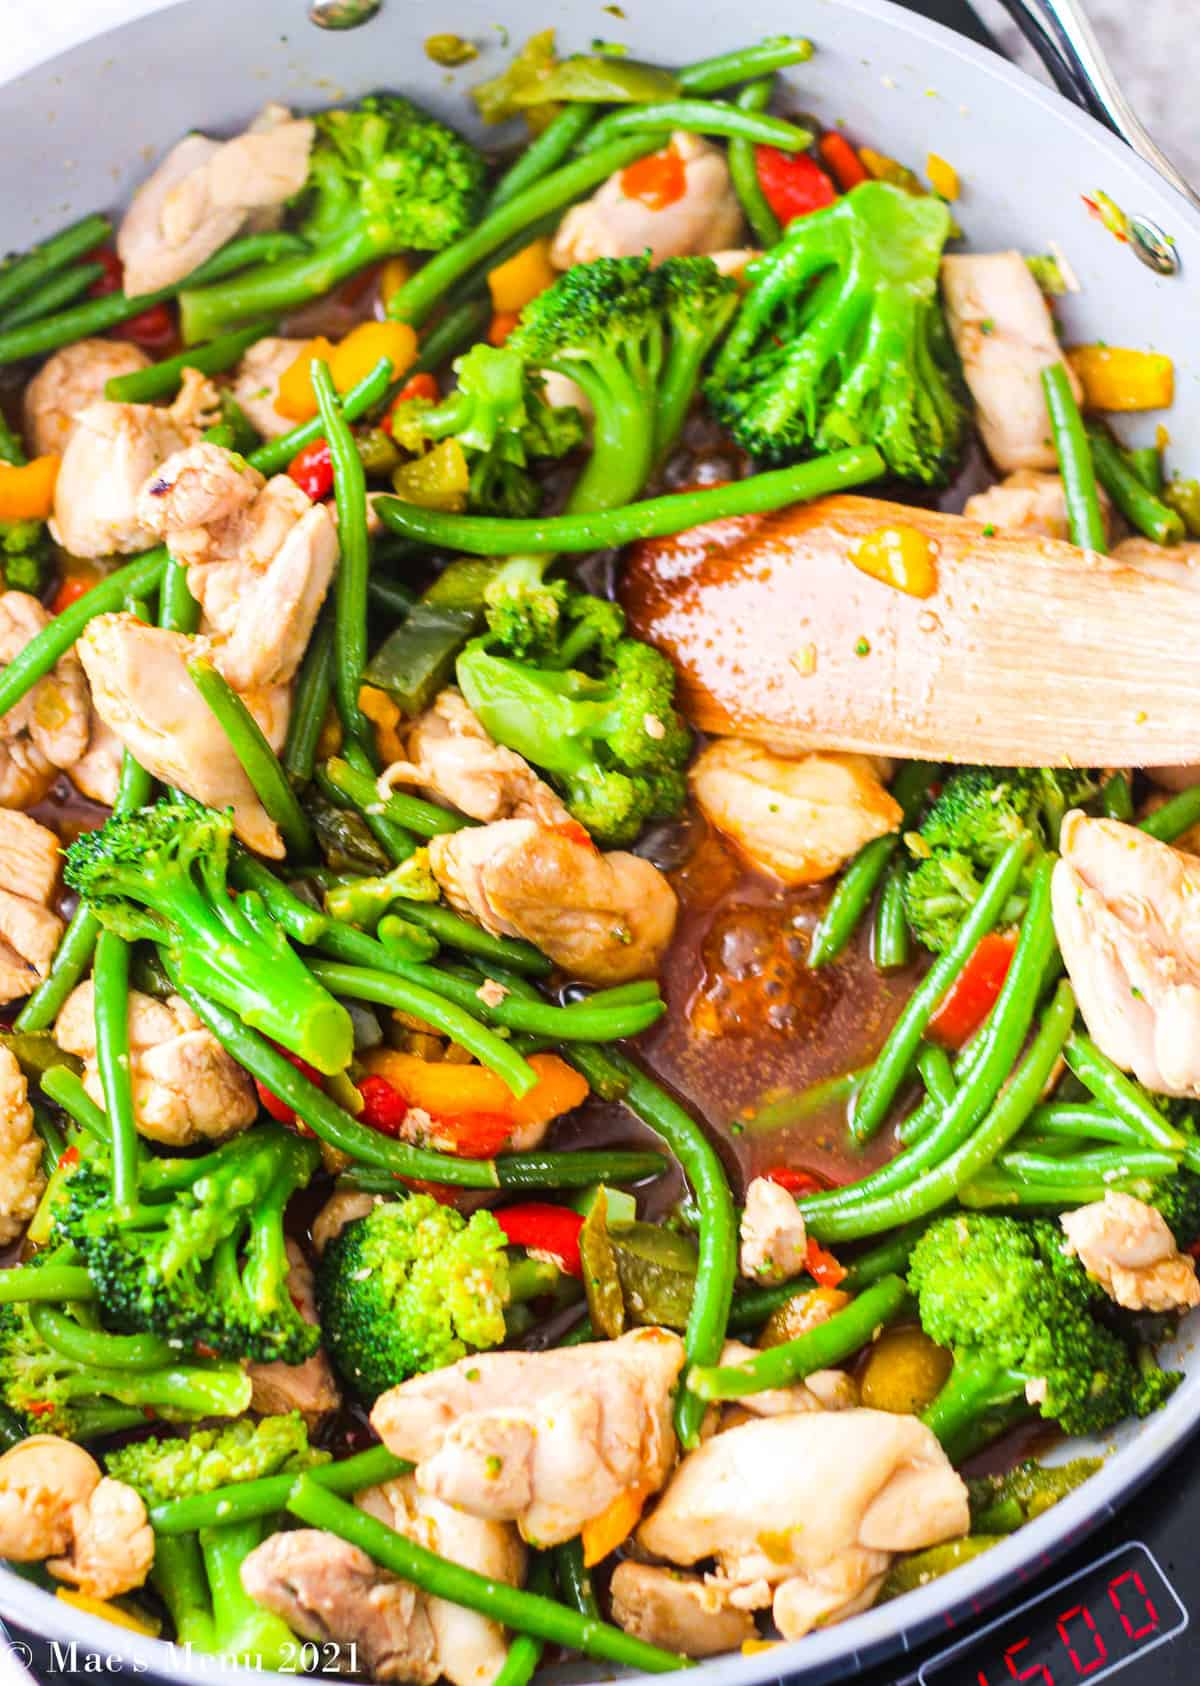 chicken and veggies simmering in a stir-fry sauce in a skillet